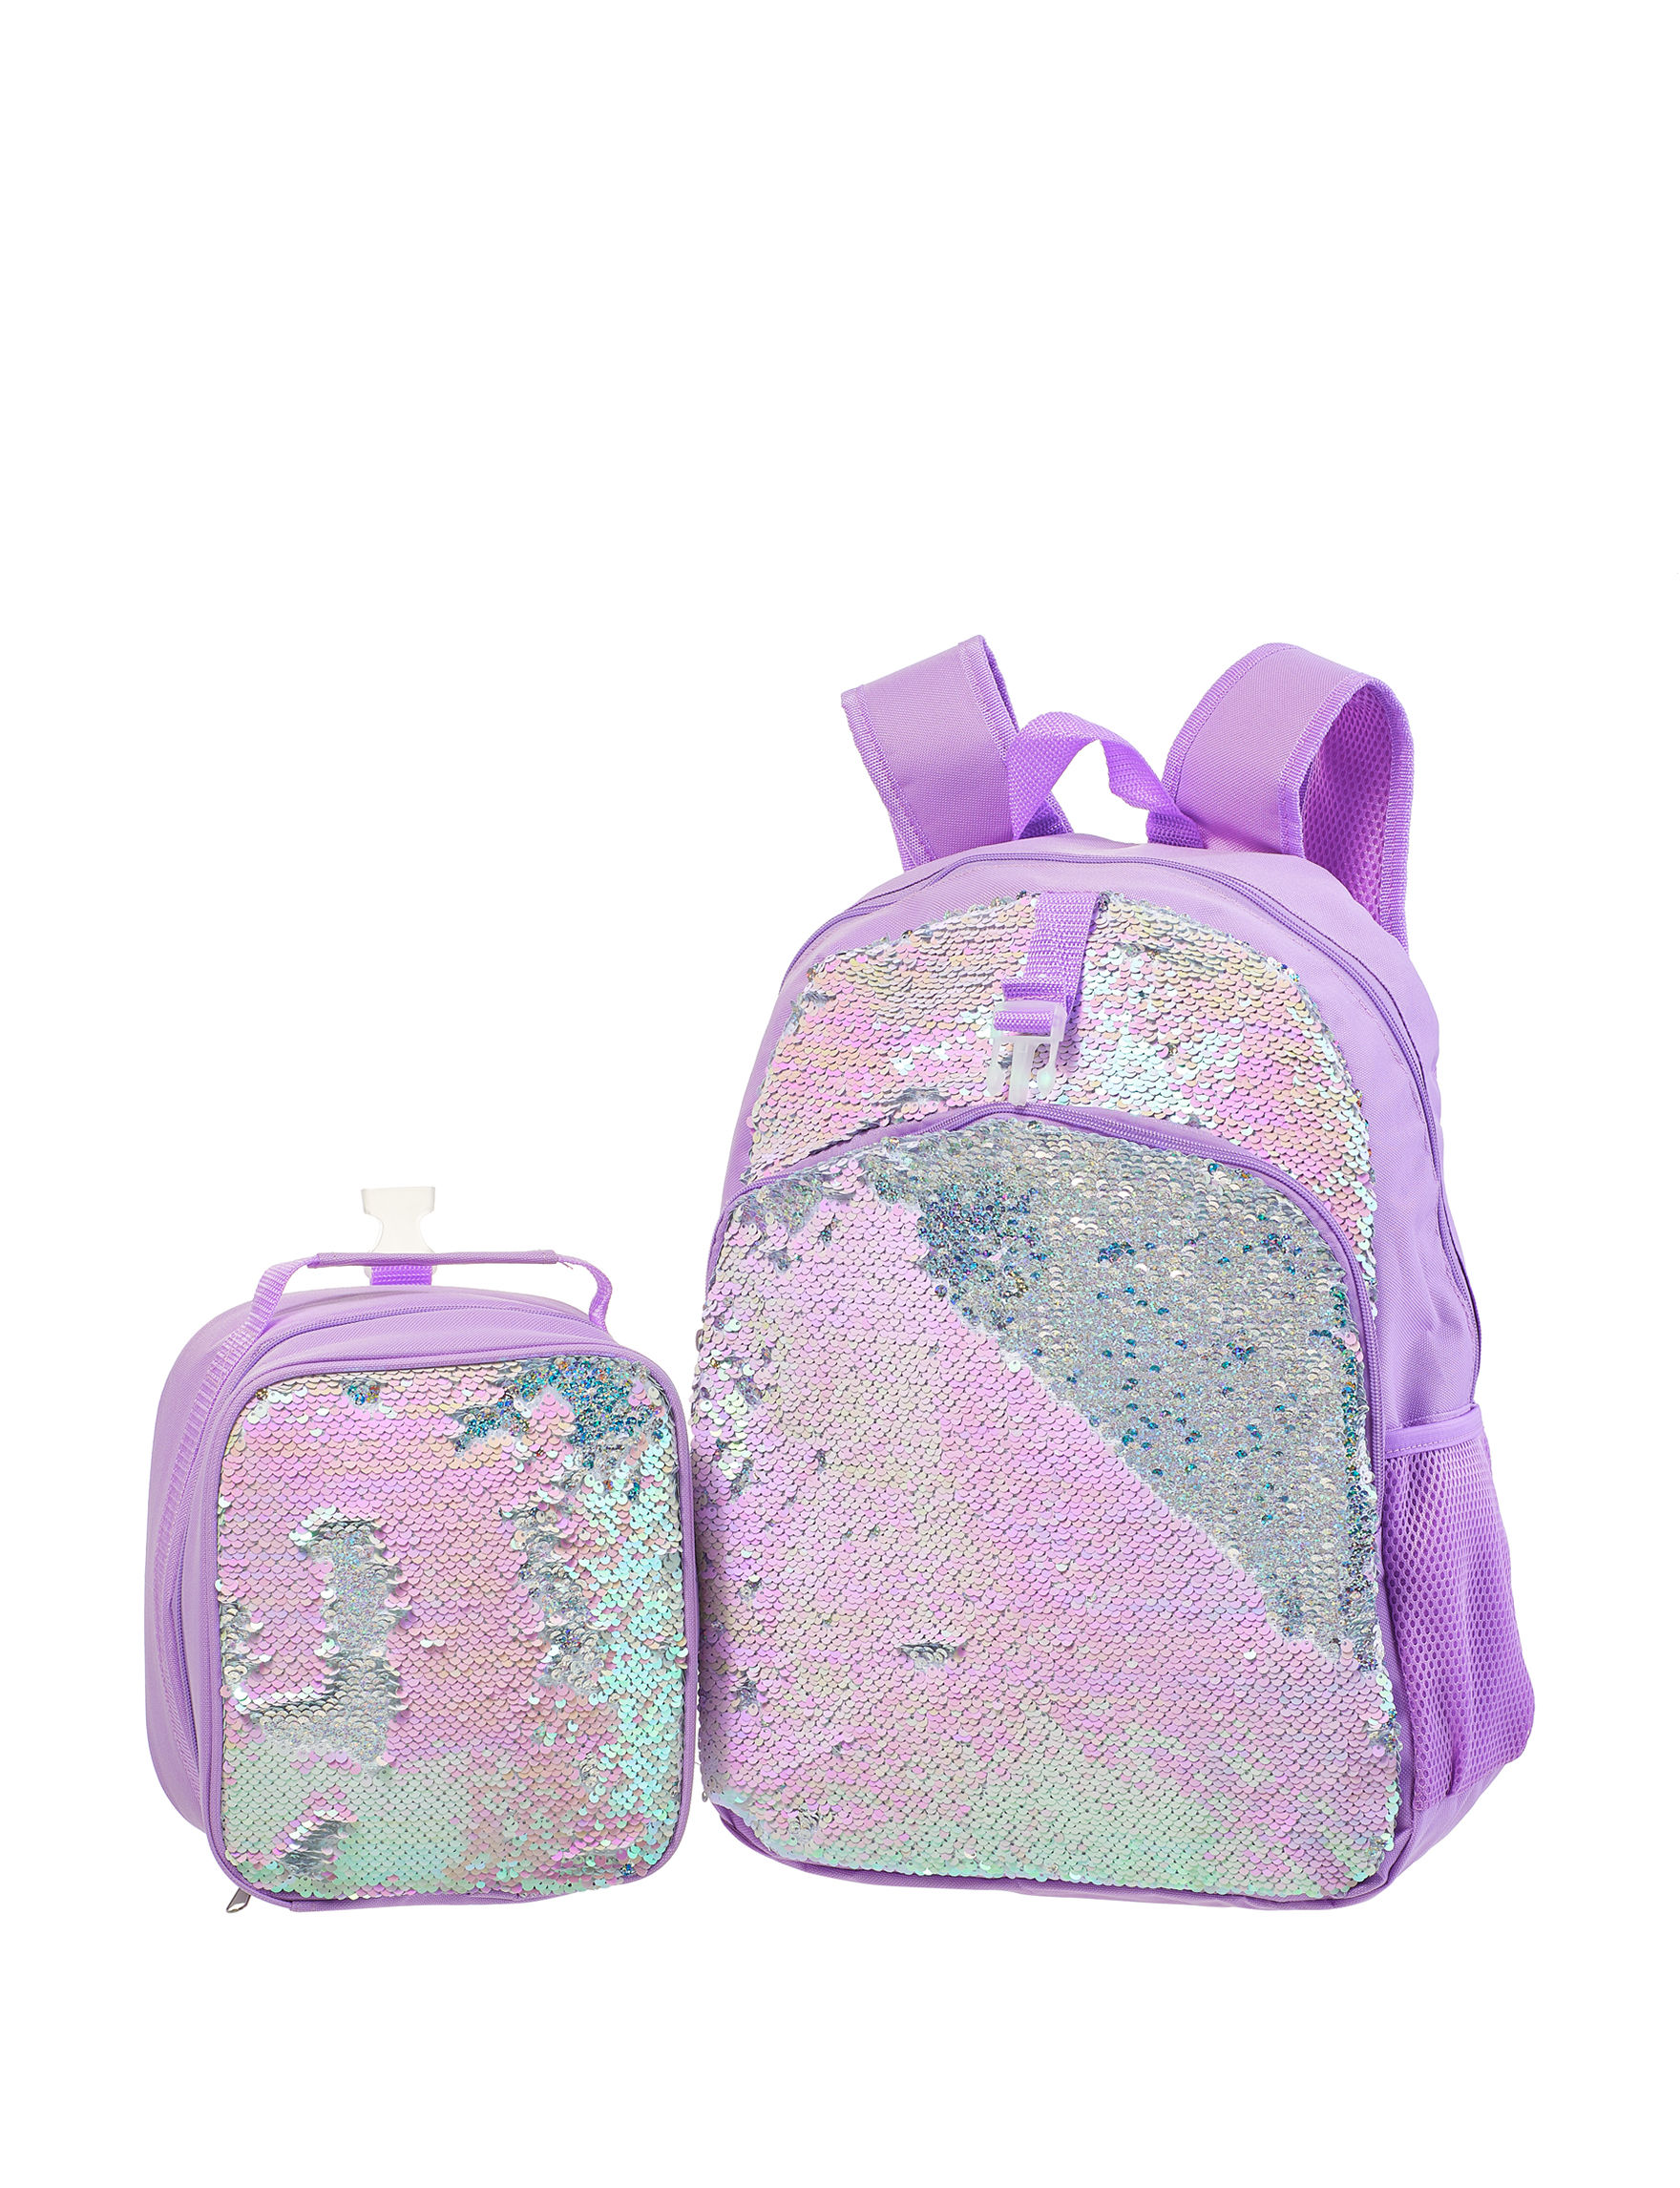 Limited Too Purple Lunch Boxes & Bags Bookbags & Backpacks